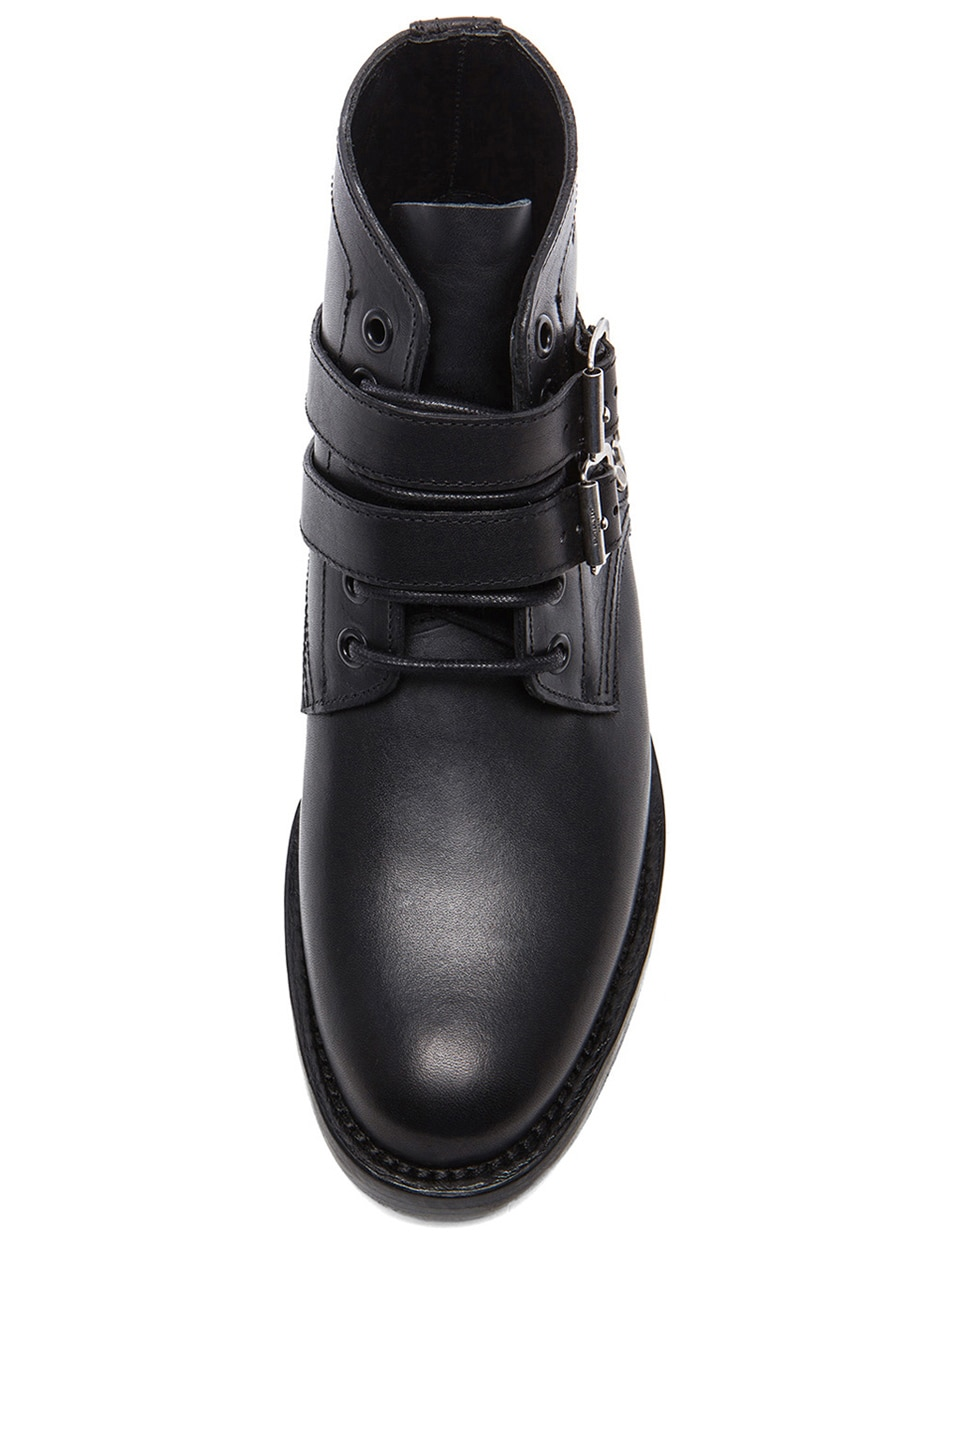 Image 4 of Saint Laurent Leather Buckled Ankle Boots in Black